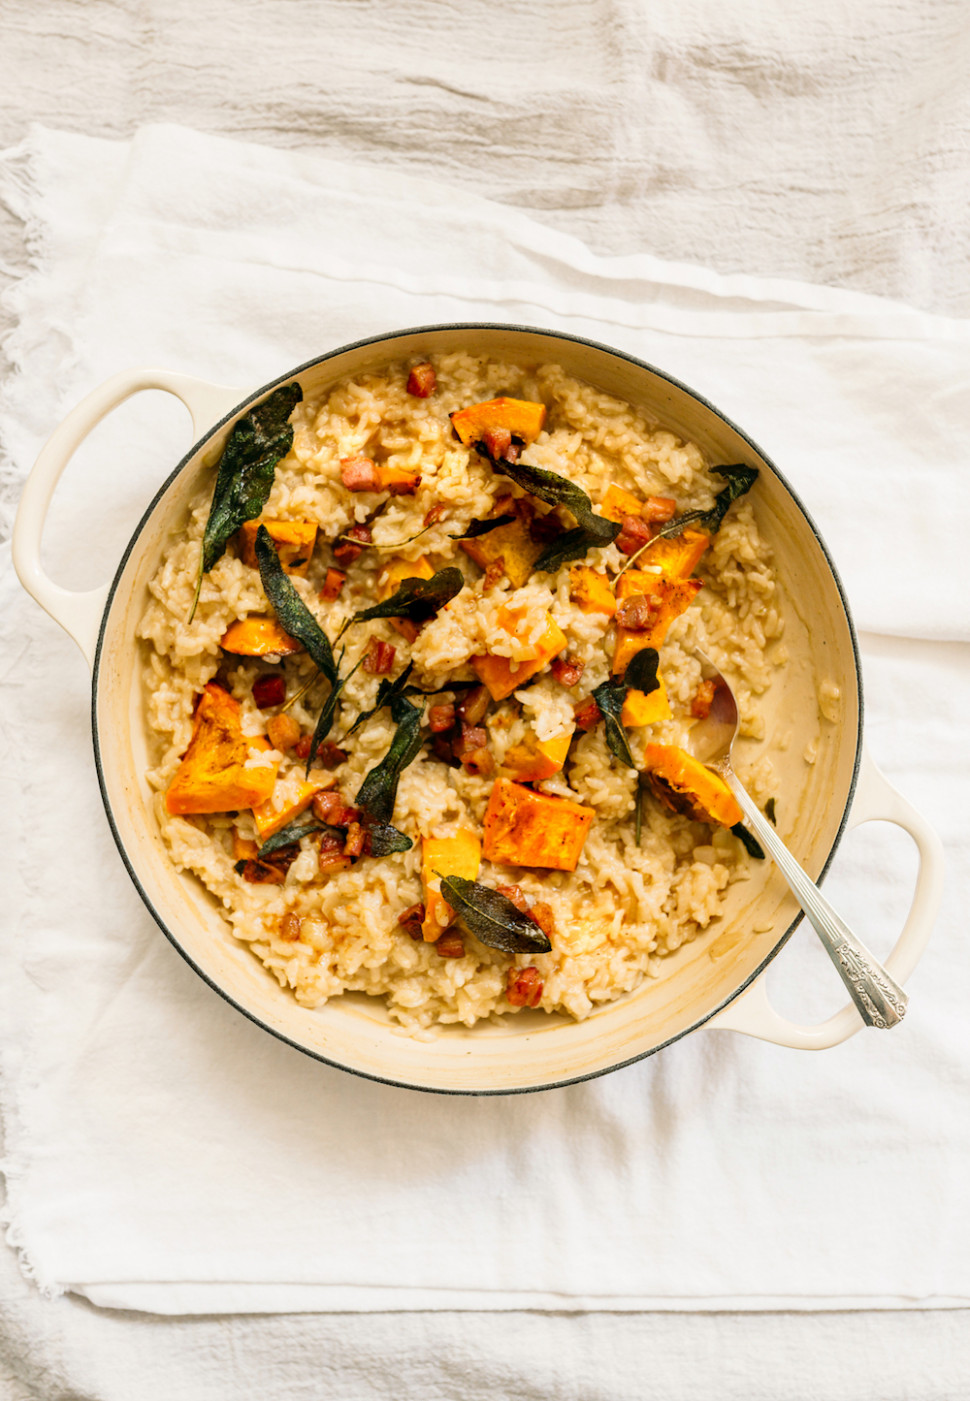 Oven-Baked Risotto with Squash, Sage, and Pancetta Recipe